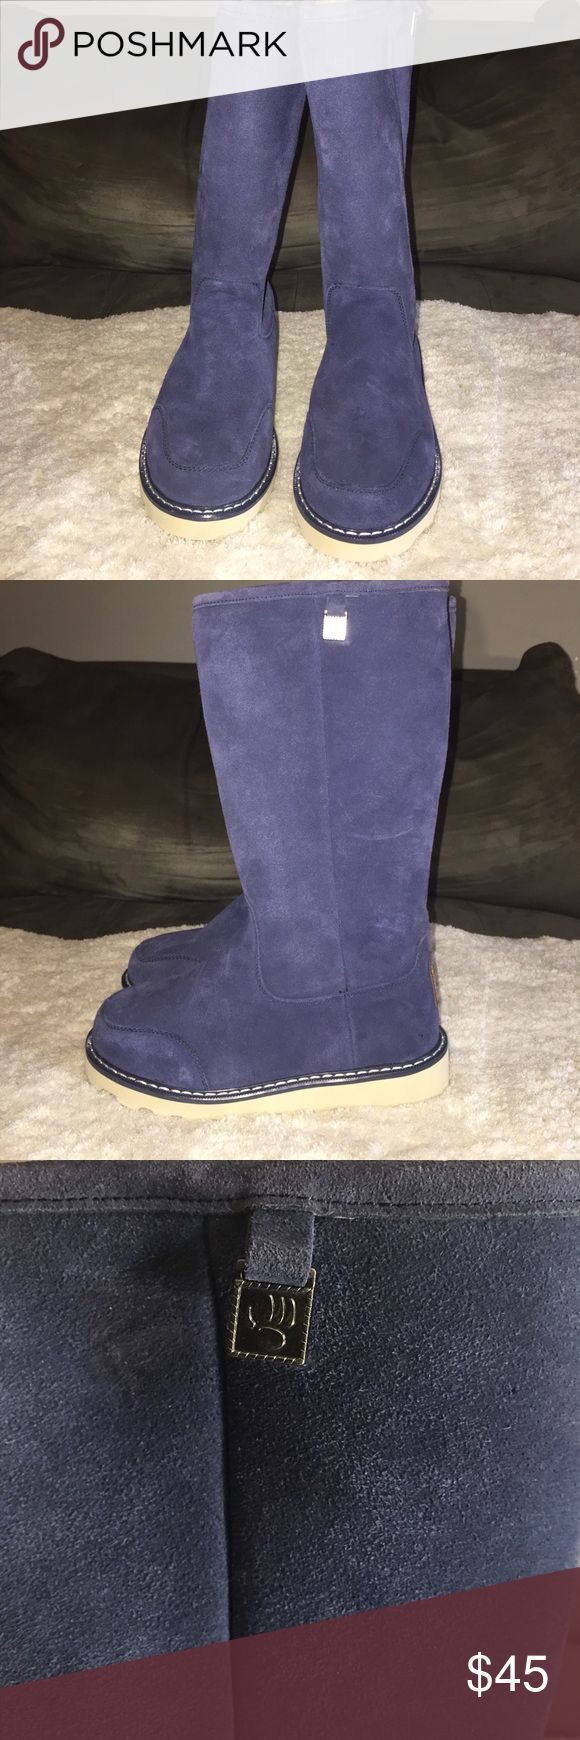 Bear paw boots new sz 6 Bear paw boots new sz 6 BearPaw Shoes Winter & Rain Boots